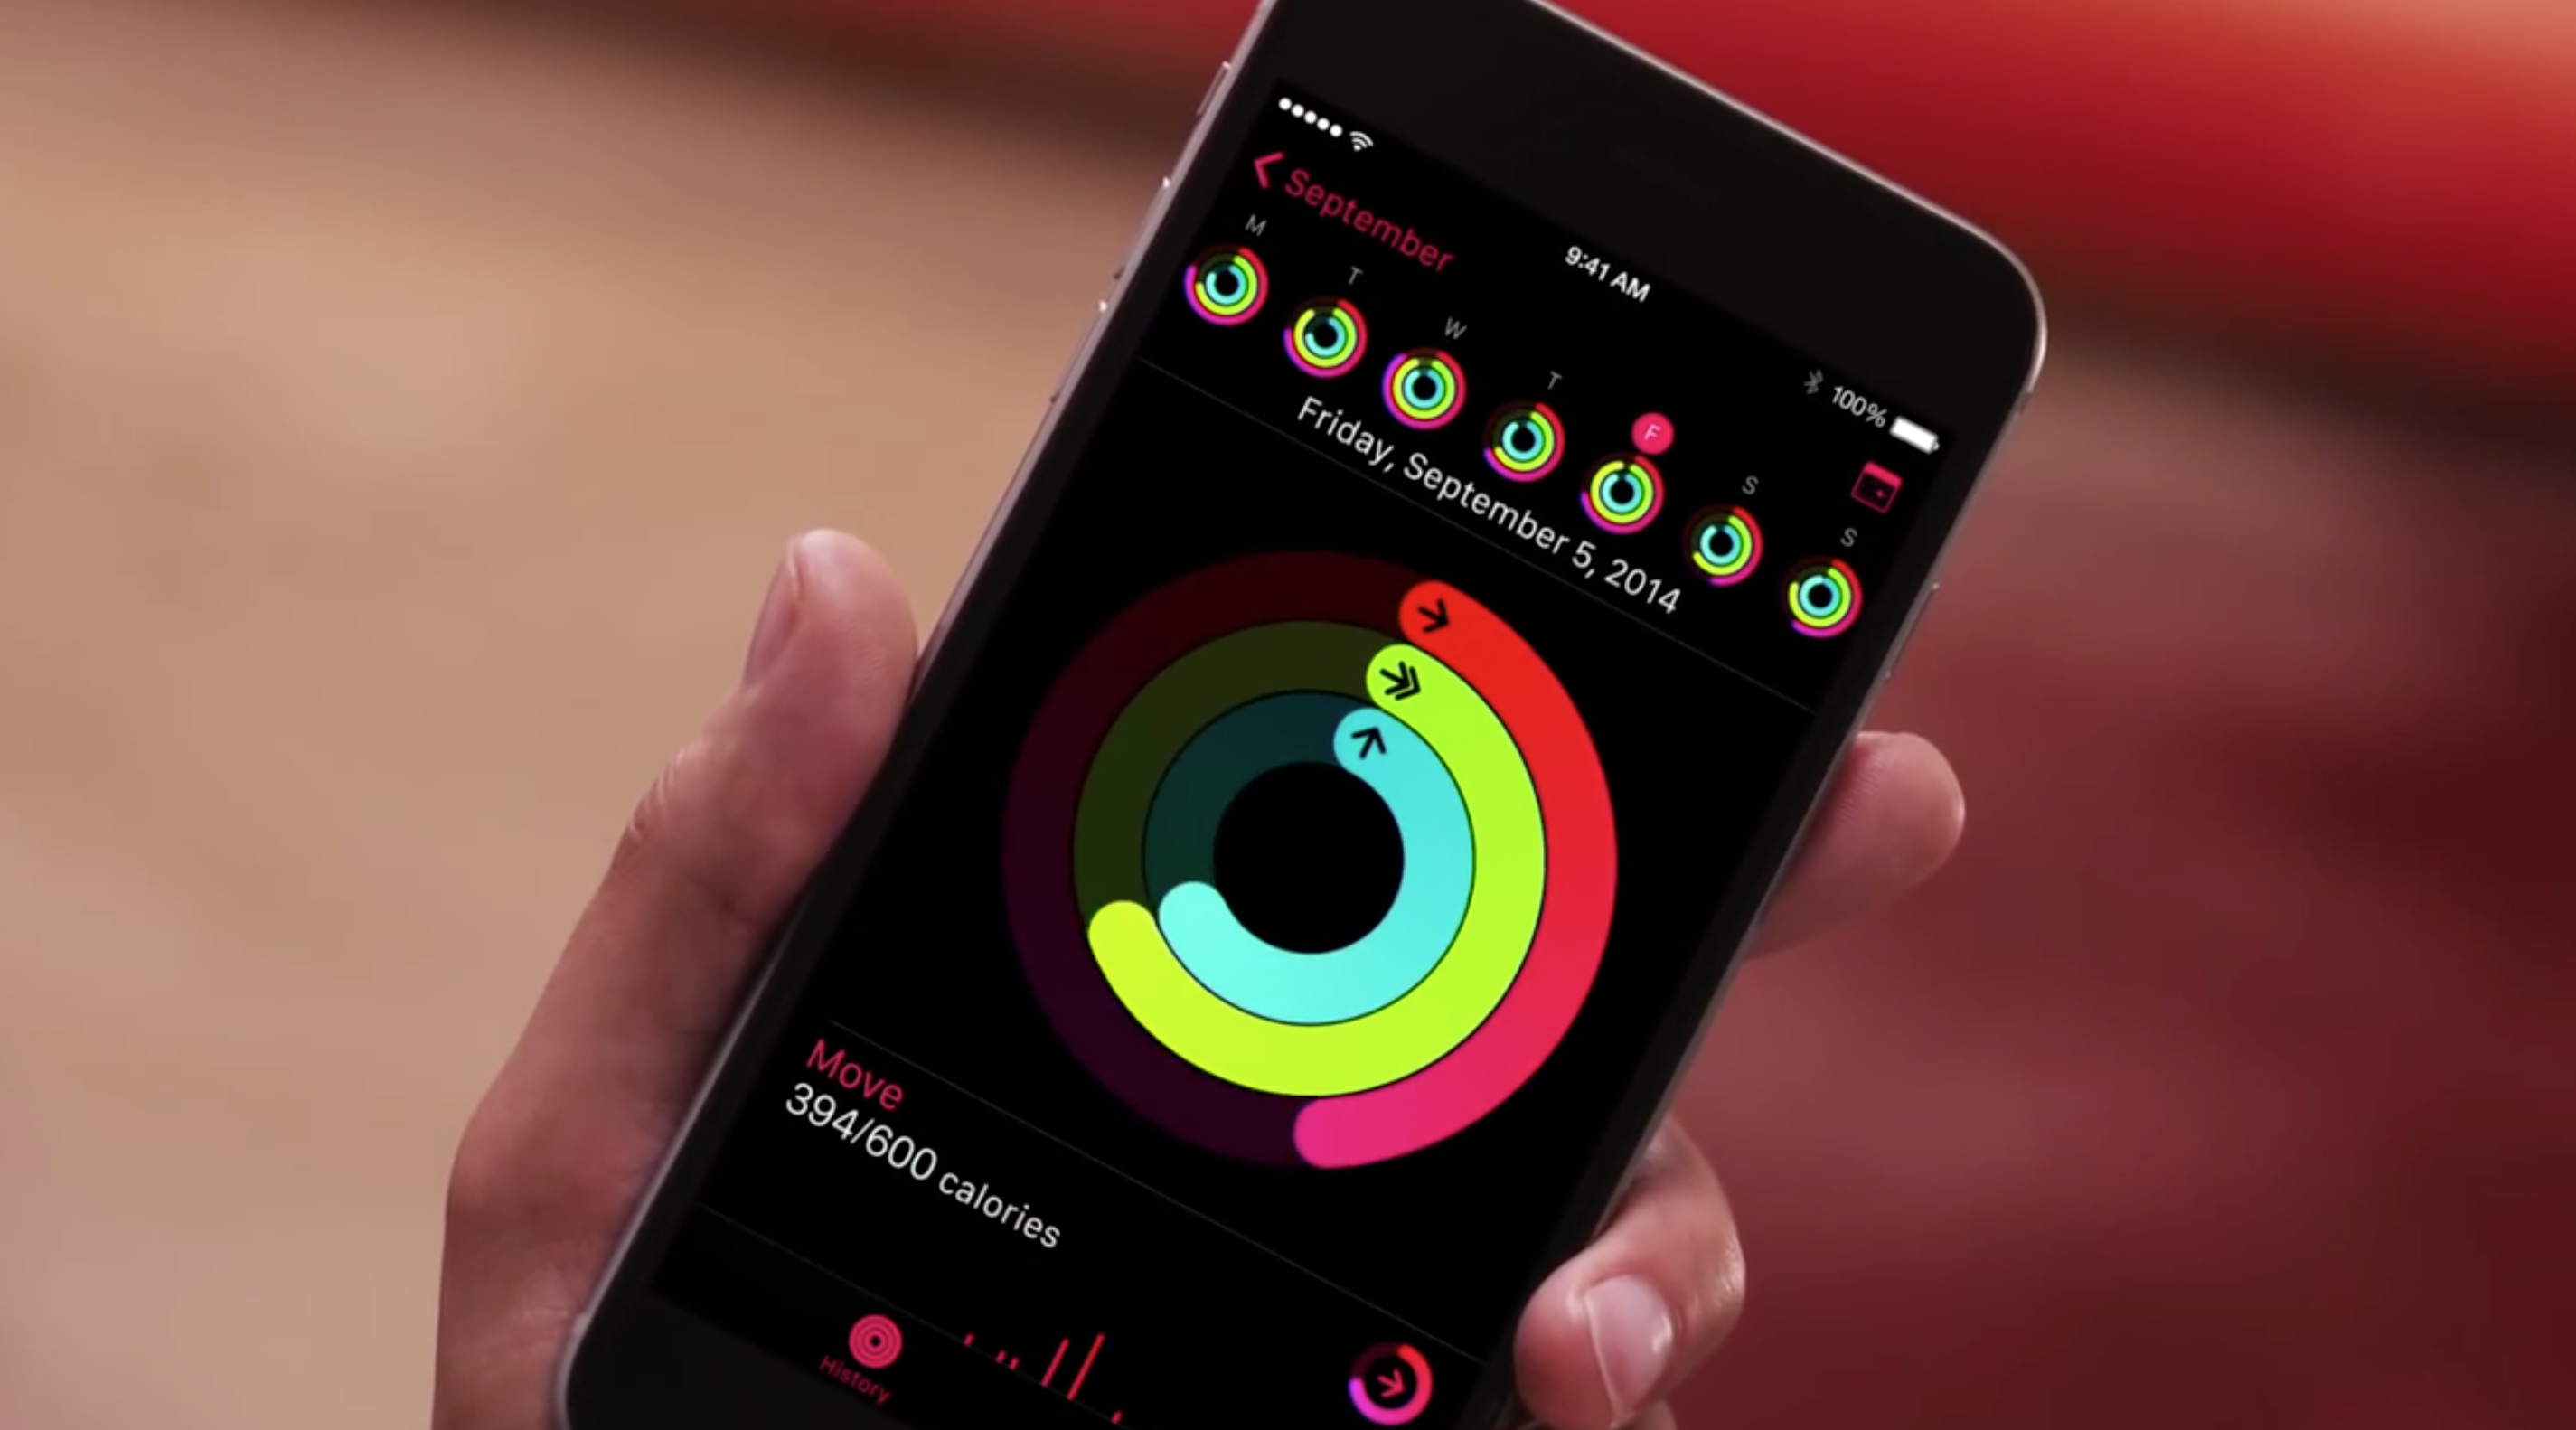 iPhone Fitness app